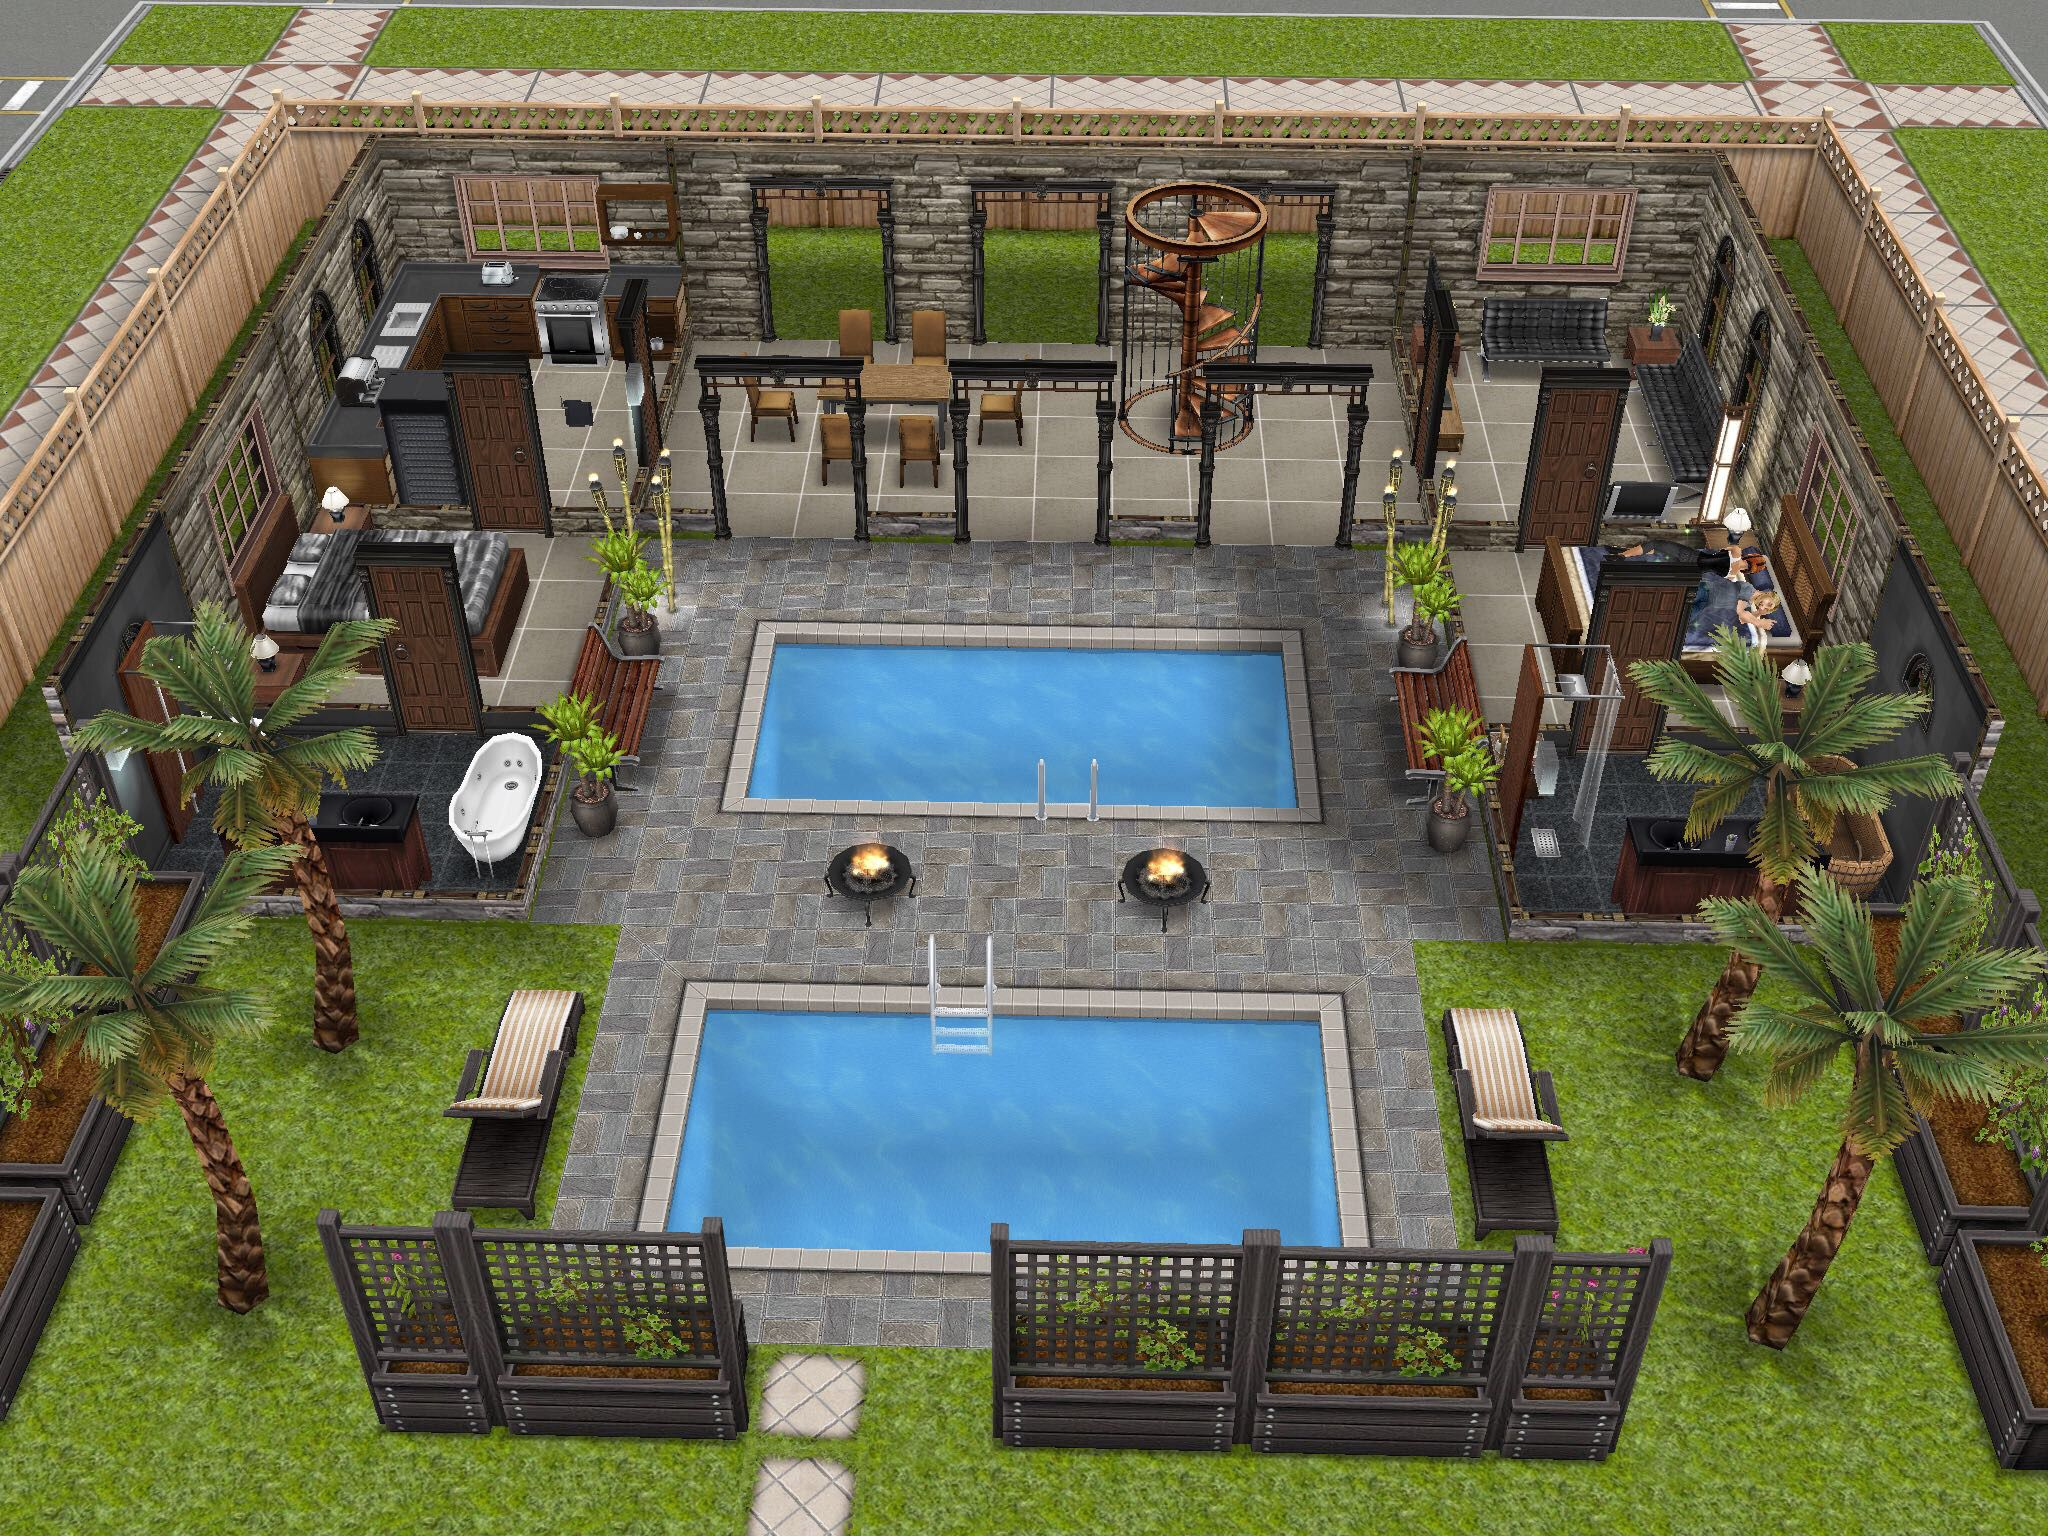 House design sims - Variation On An Awesome House Design I Saw On Pinterest Level 1